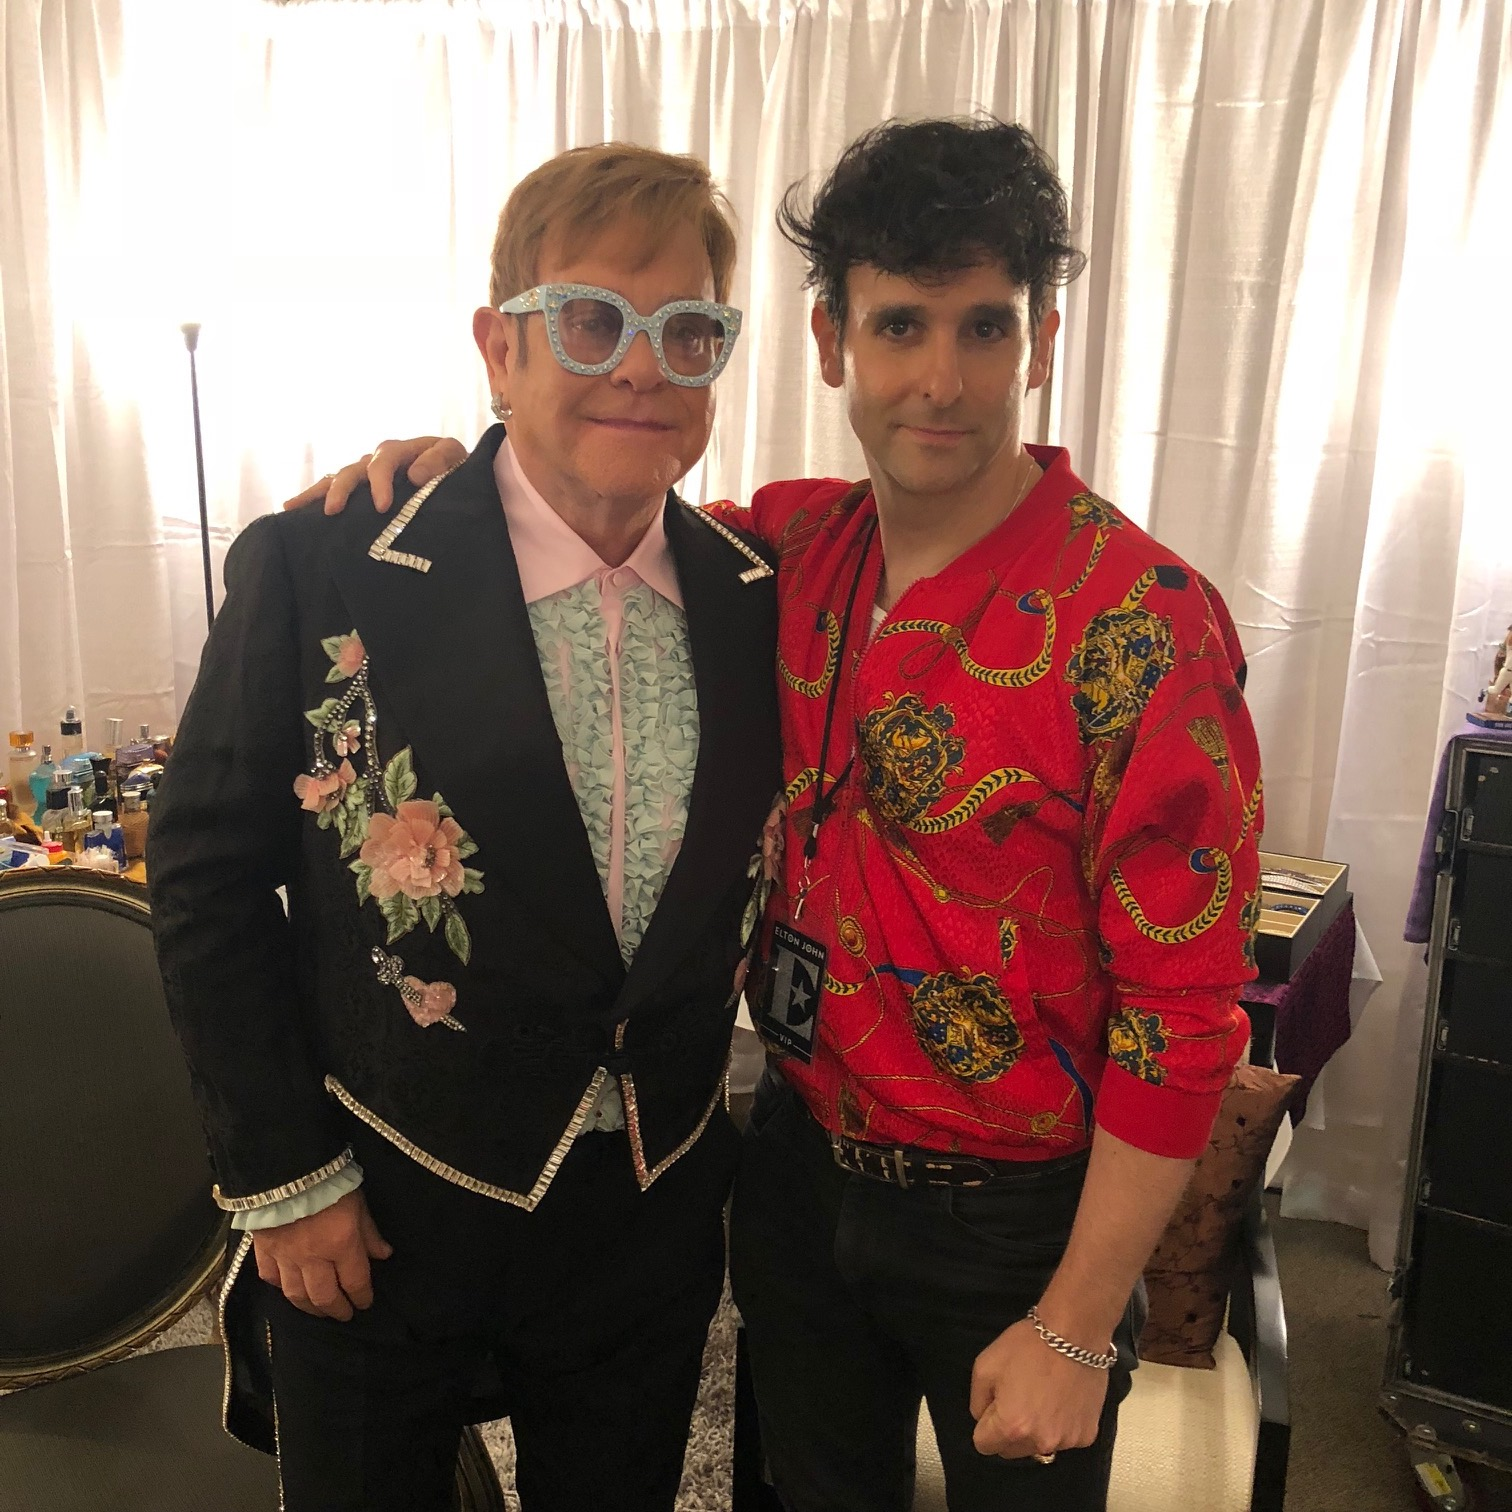 Elton John and Adam Weiner of Philadelphia band Low Cut Connie backstage at the Wells Fargo Center on Wednesday.